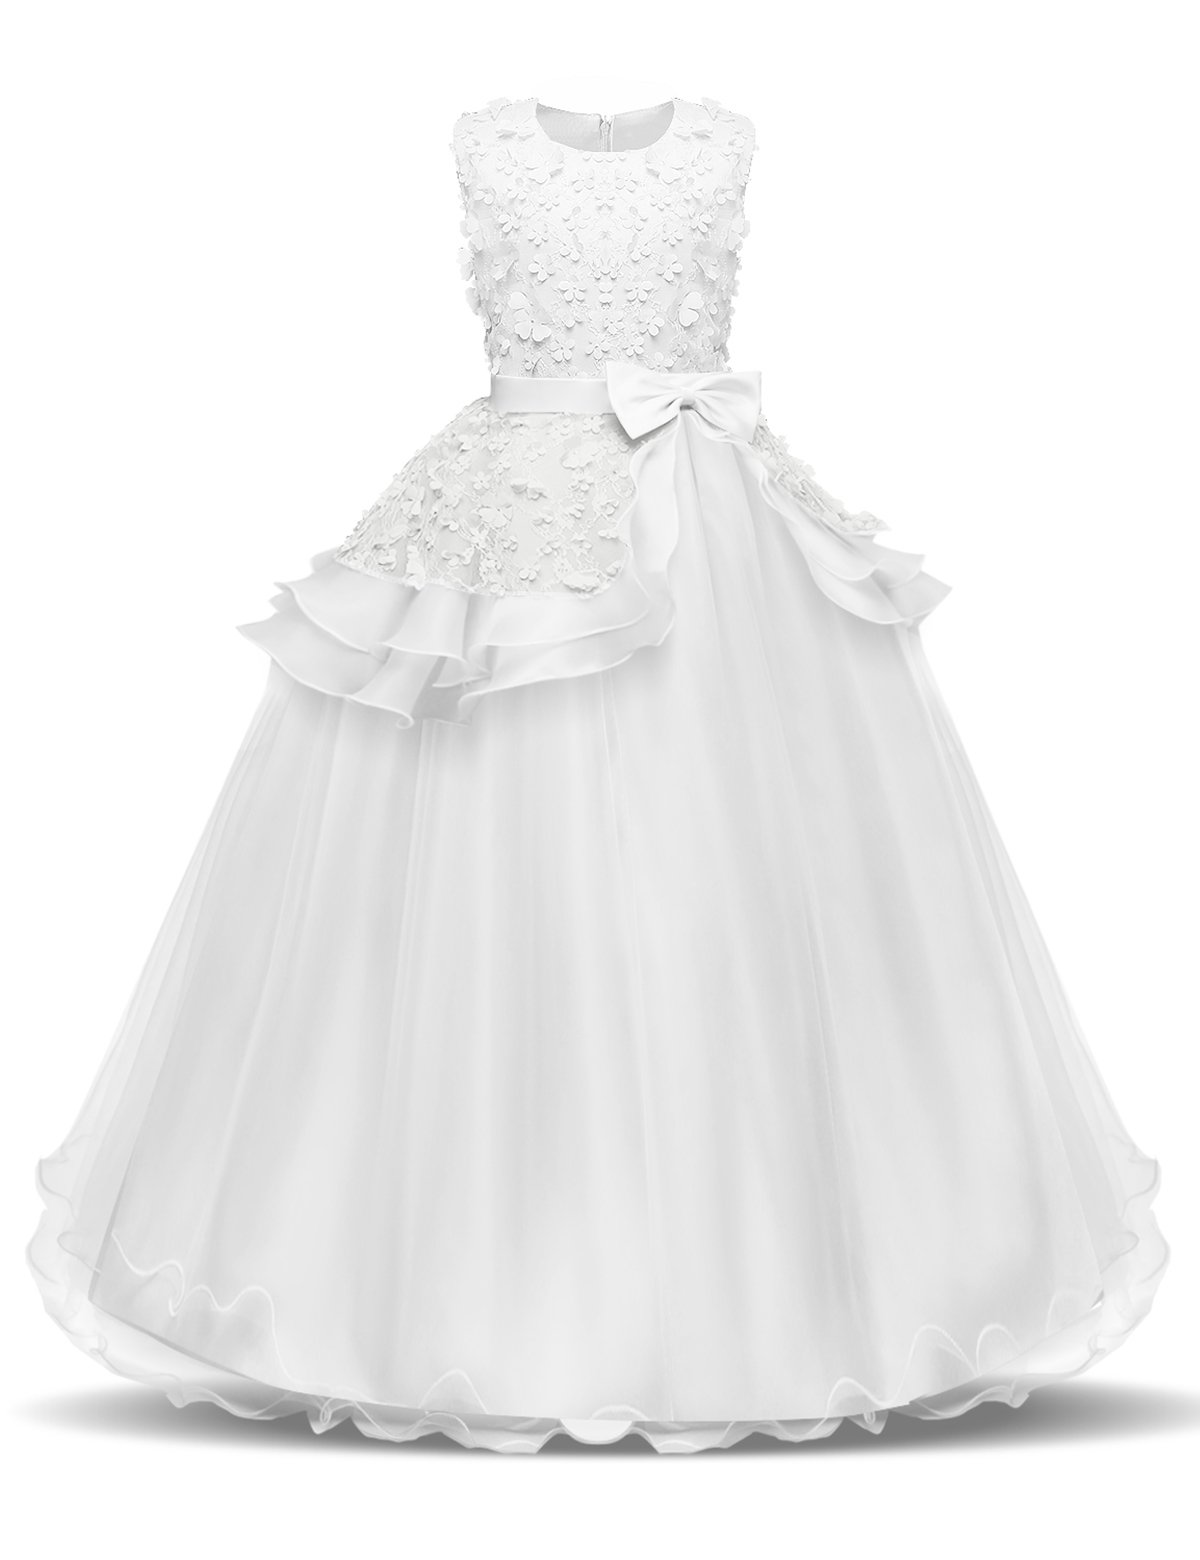 NNJXD Girl Sleeveless Embroidery Princess Pageant Dresses Kids Prom Ball Gown Size (130) 6-7 Years White